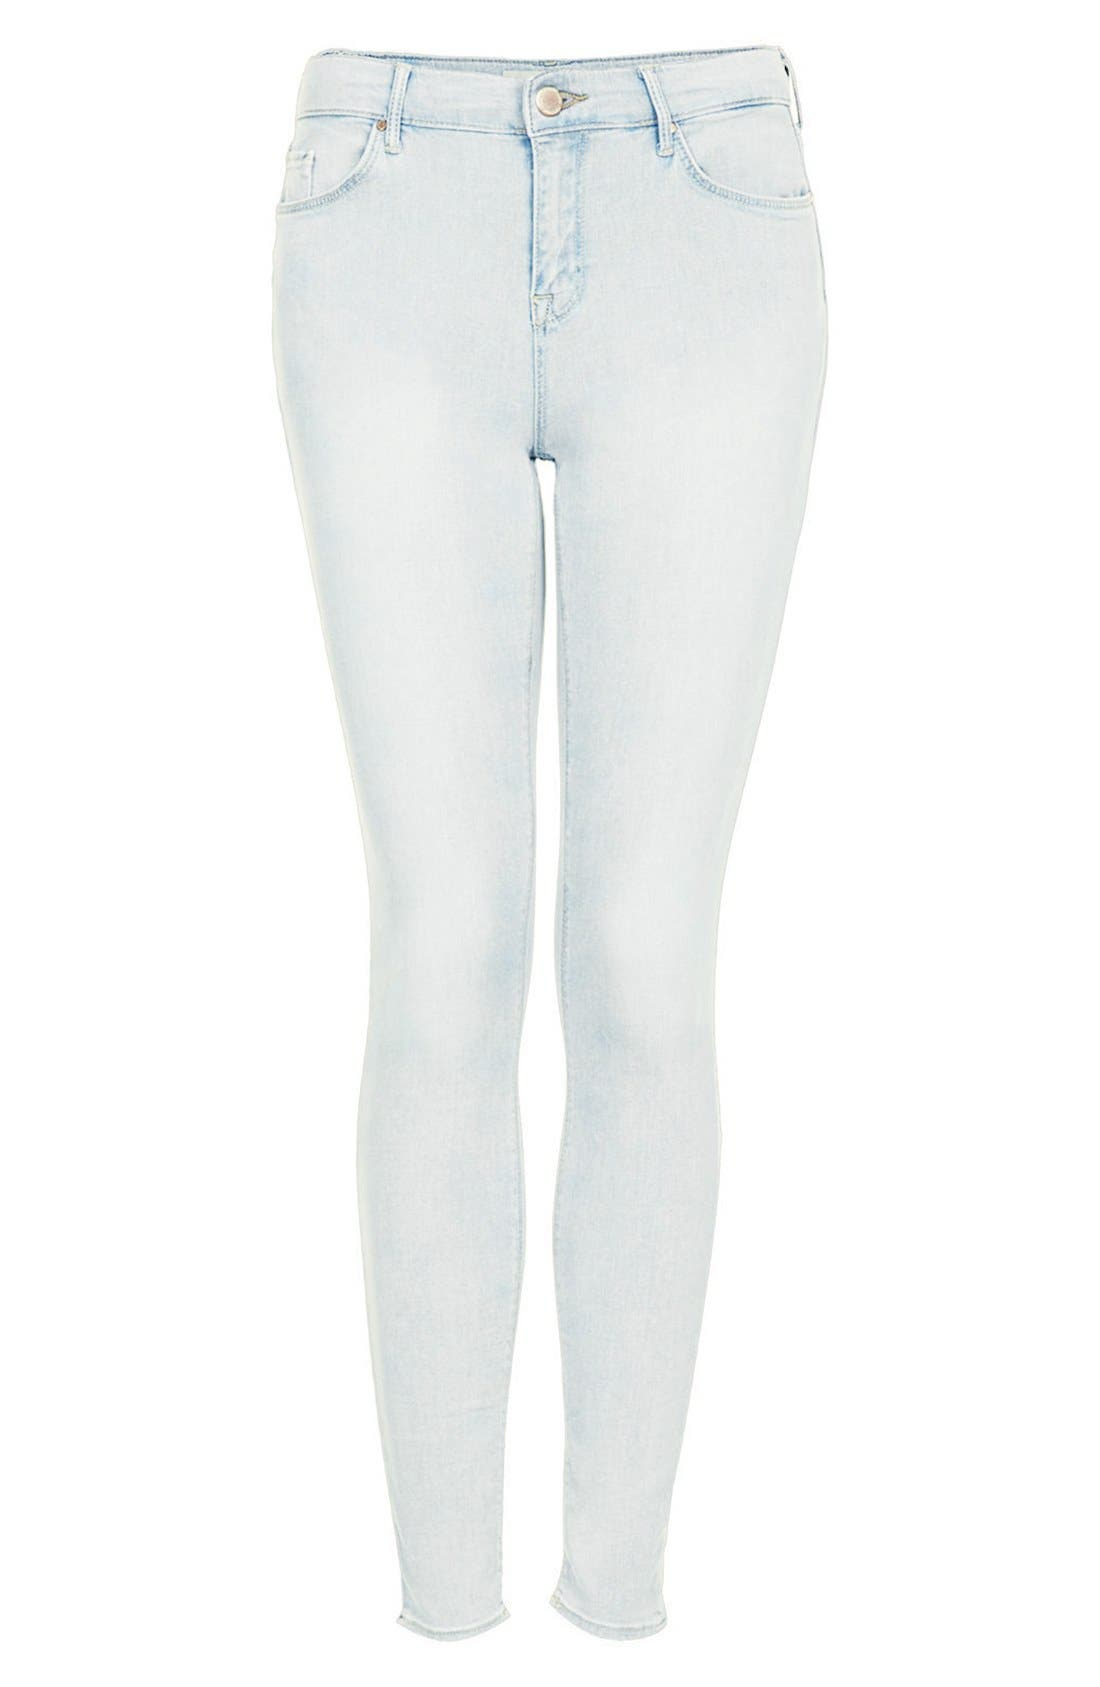 Alternate Image 3  - Topshop Moto 'Leigh' Bleach Skinny Jeans (Regular & Short) (Light Denim)